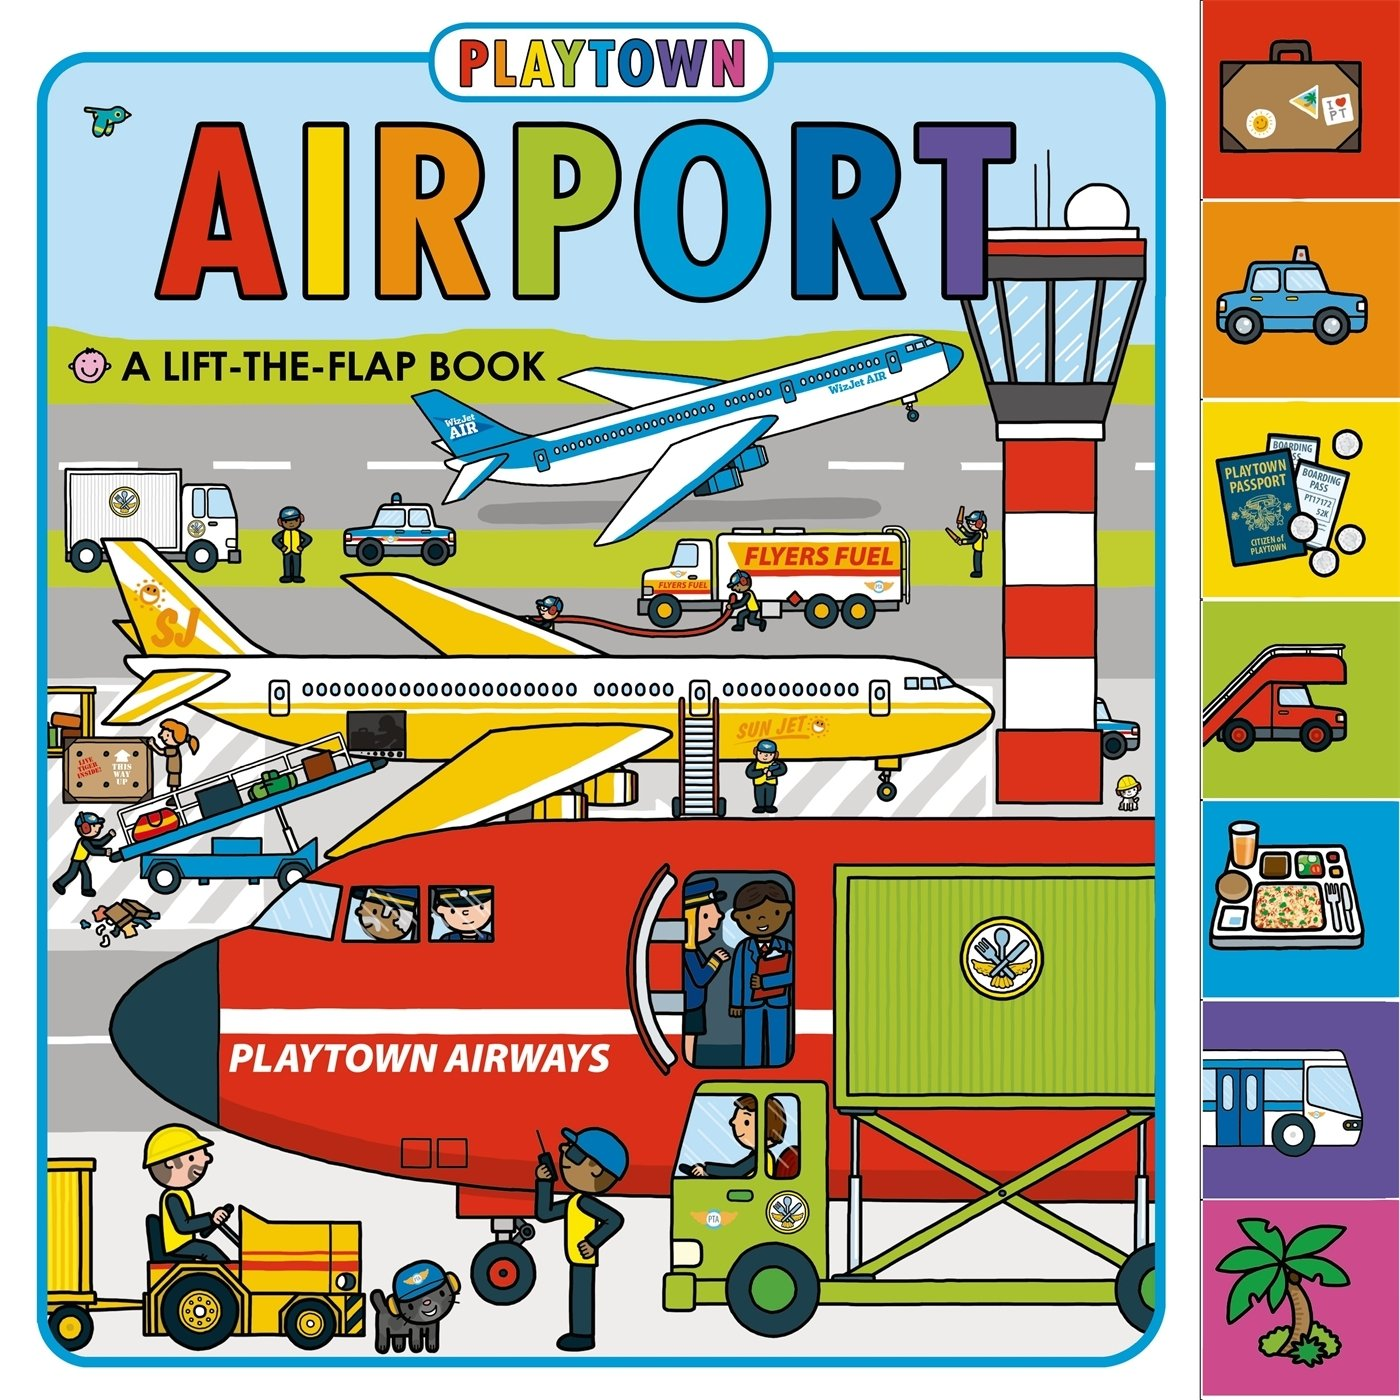 Playtown Airport revised Lift Flap